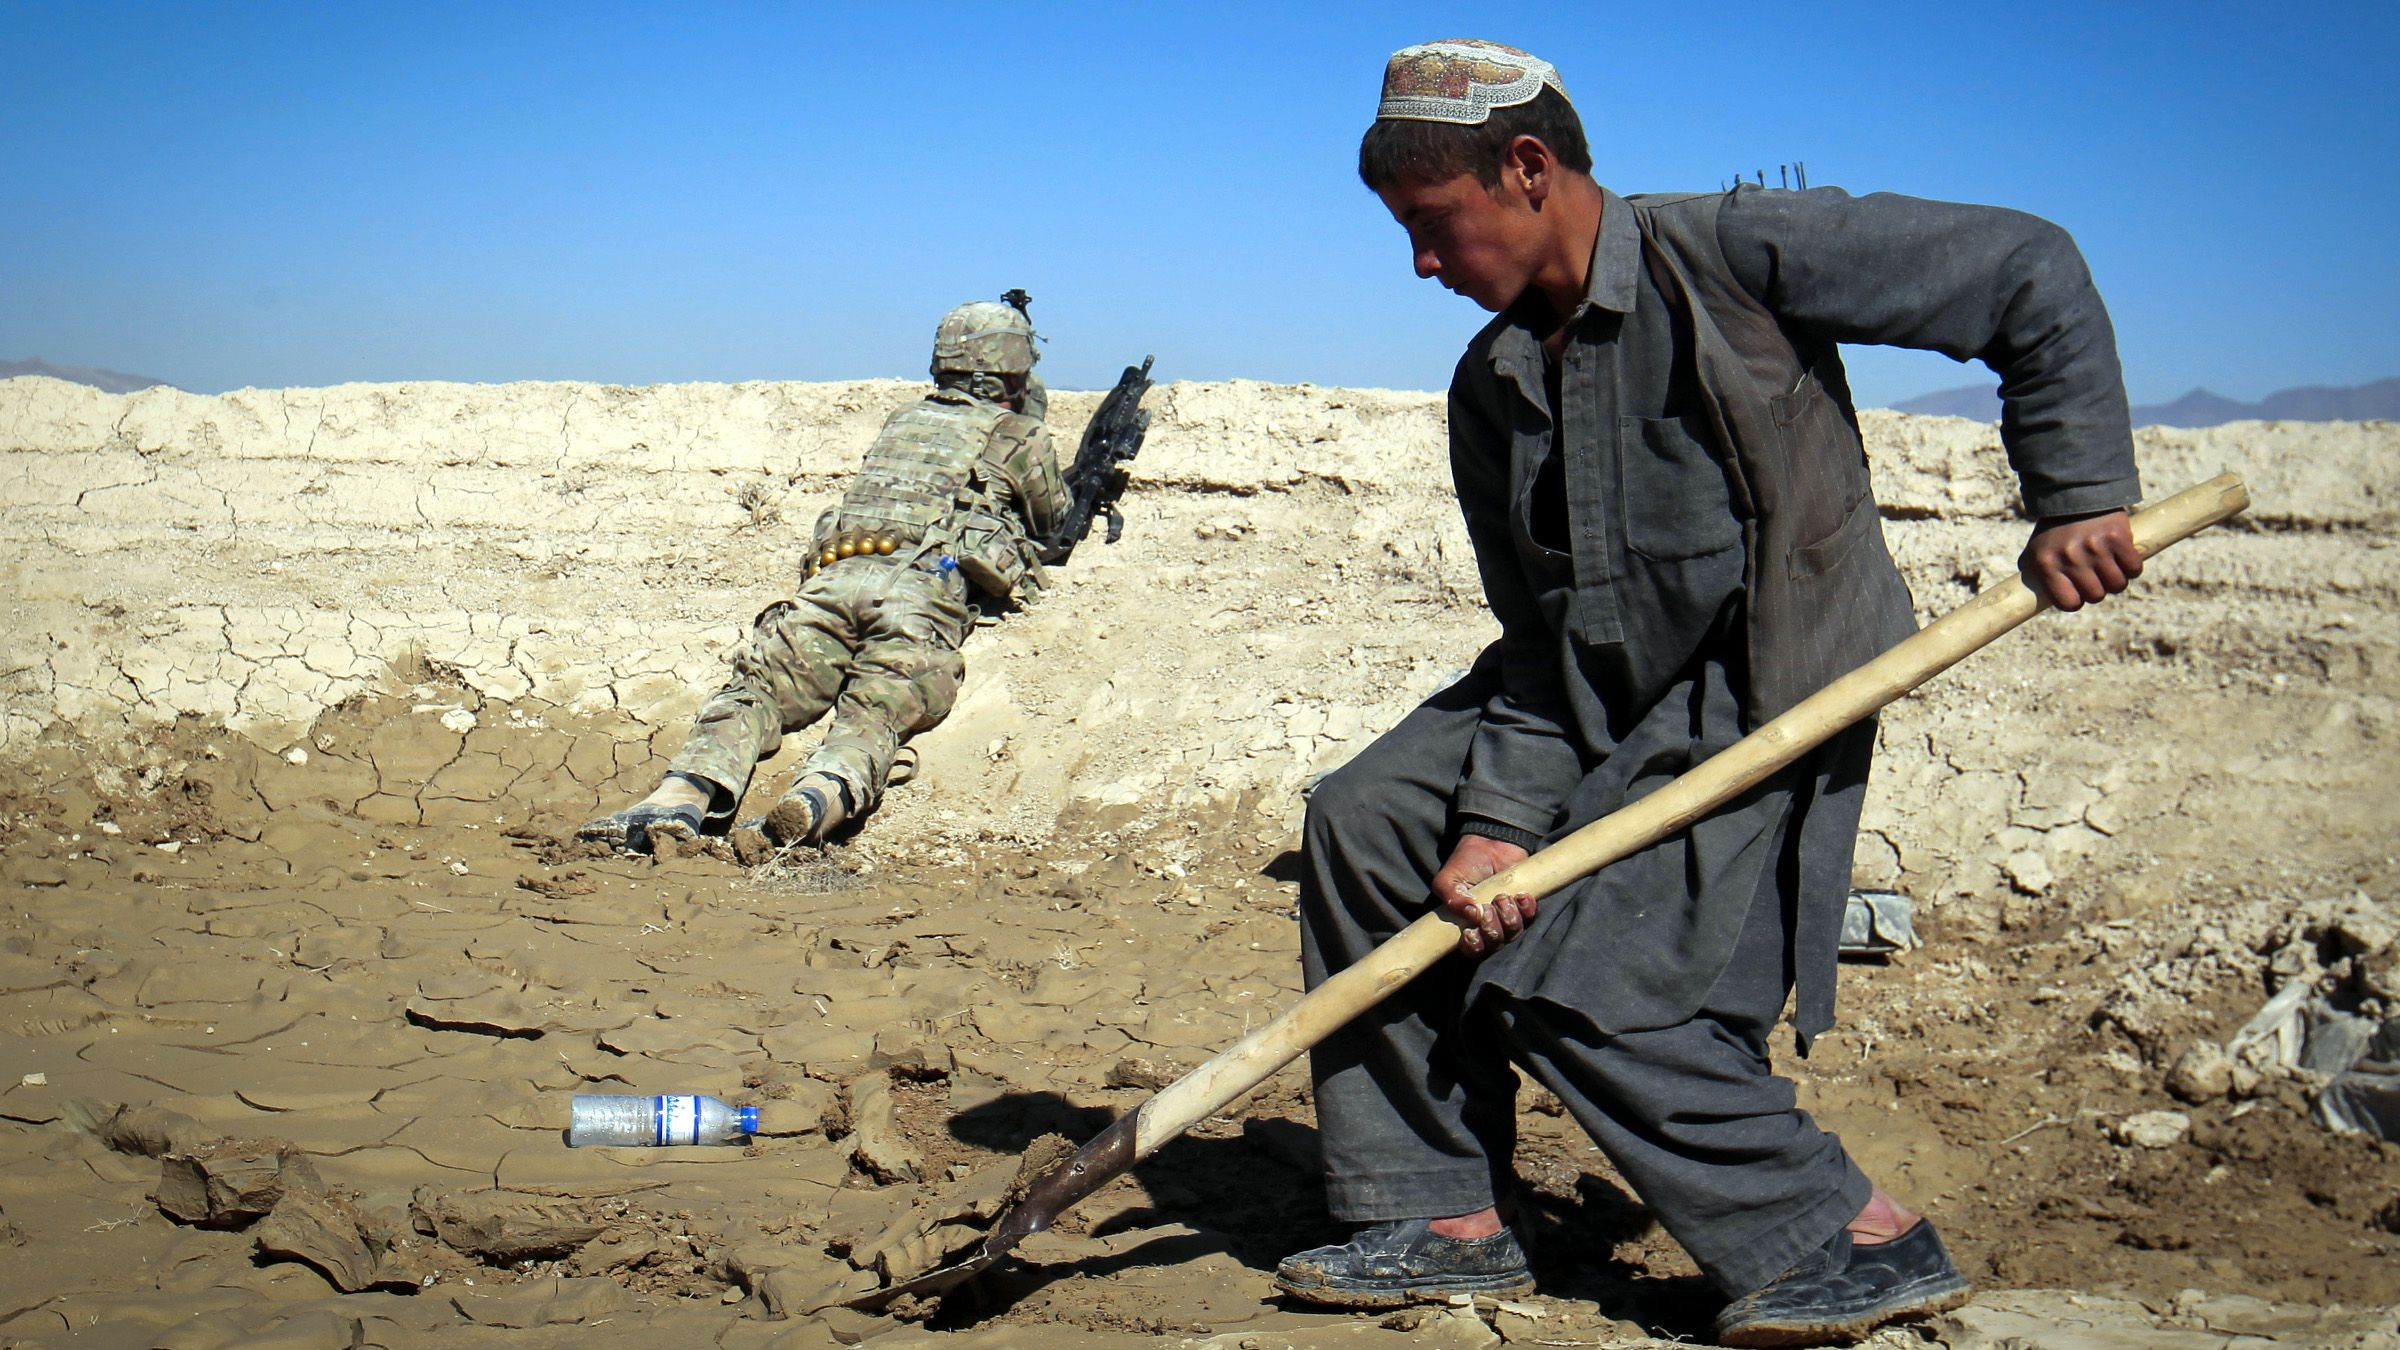 An Afghan boy works at a construction site as a U.S. Army soldier of 3/1 AD Task Force Bulldog takes position during a joint patrol with Afghan National Army (ANA) in a village in Kherwar district in Logar province, eastern Afghanistan, May 23, 2012.